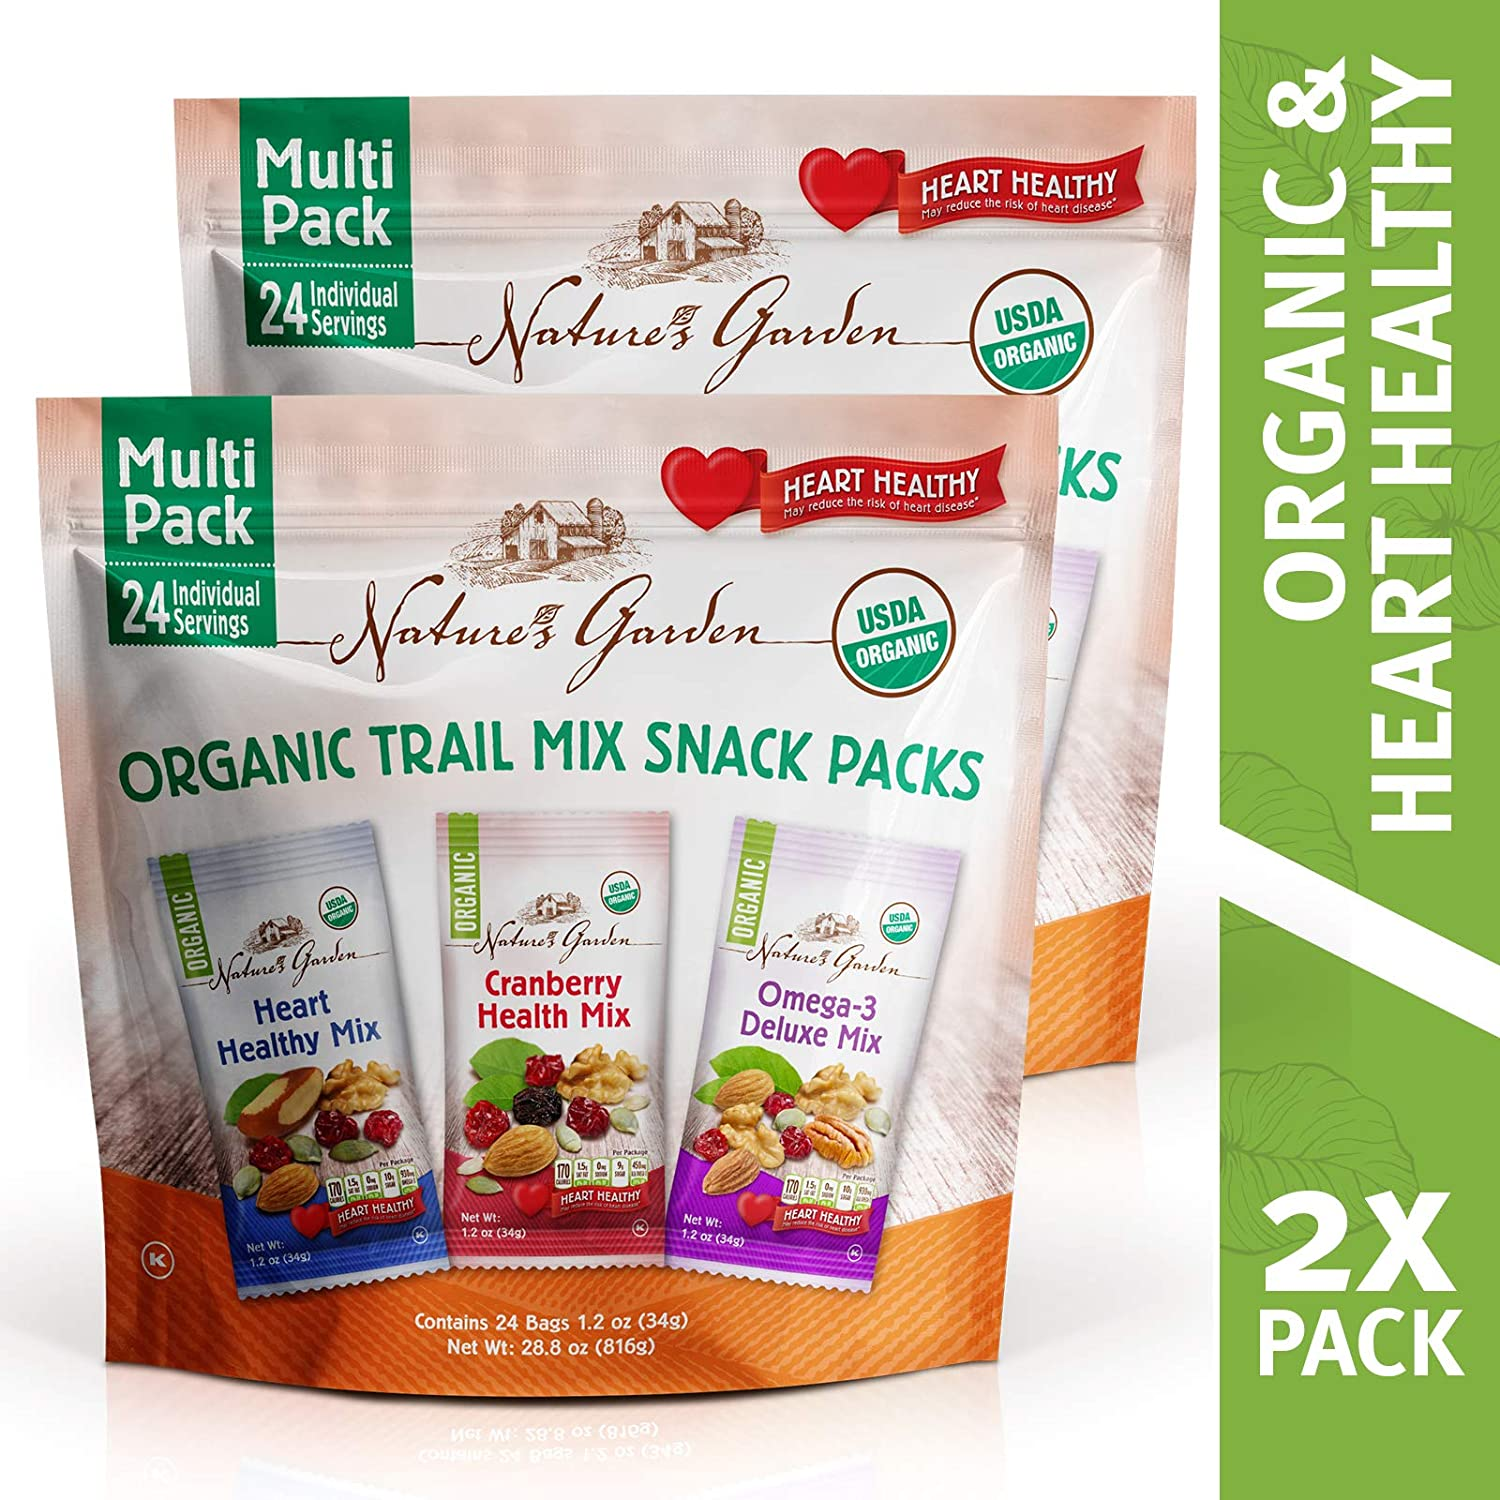 Nature's Garden Organic Trail Mix Snack Packs, Multi Pack 28.8 oz - 24 Individual Servings (Pack of 2)